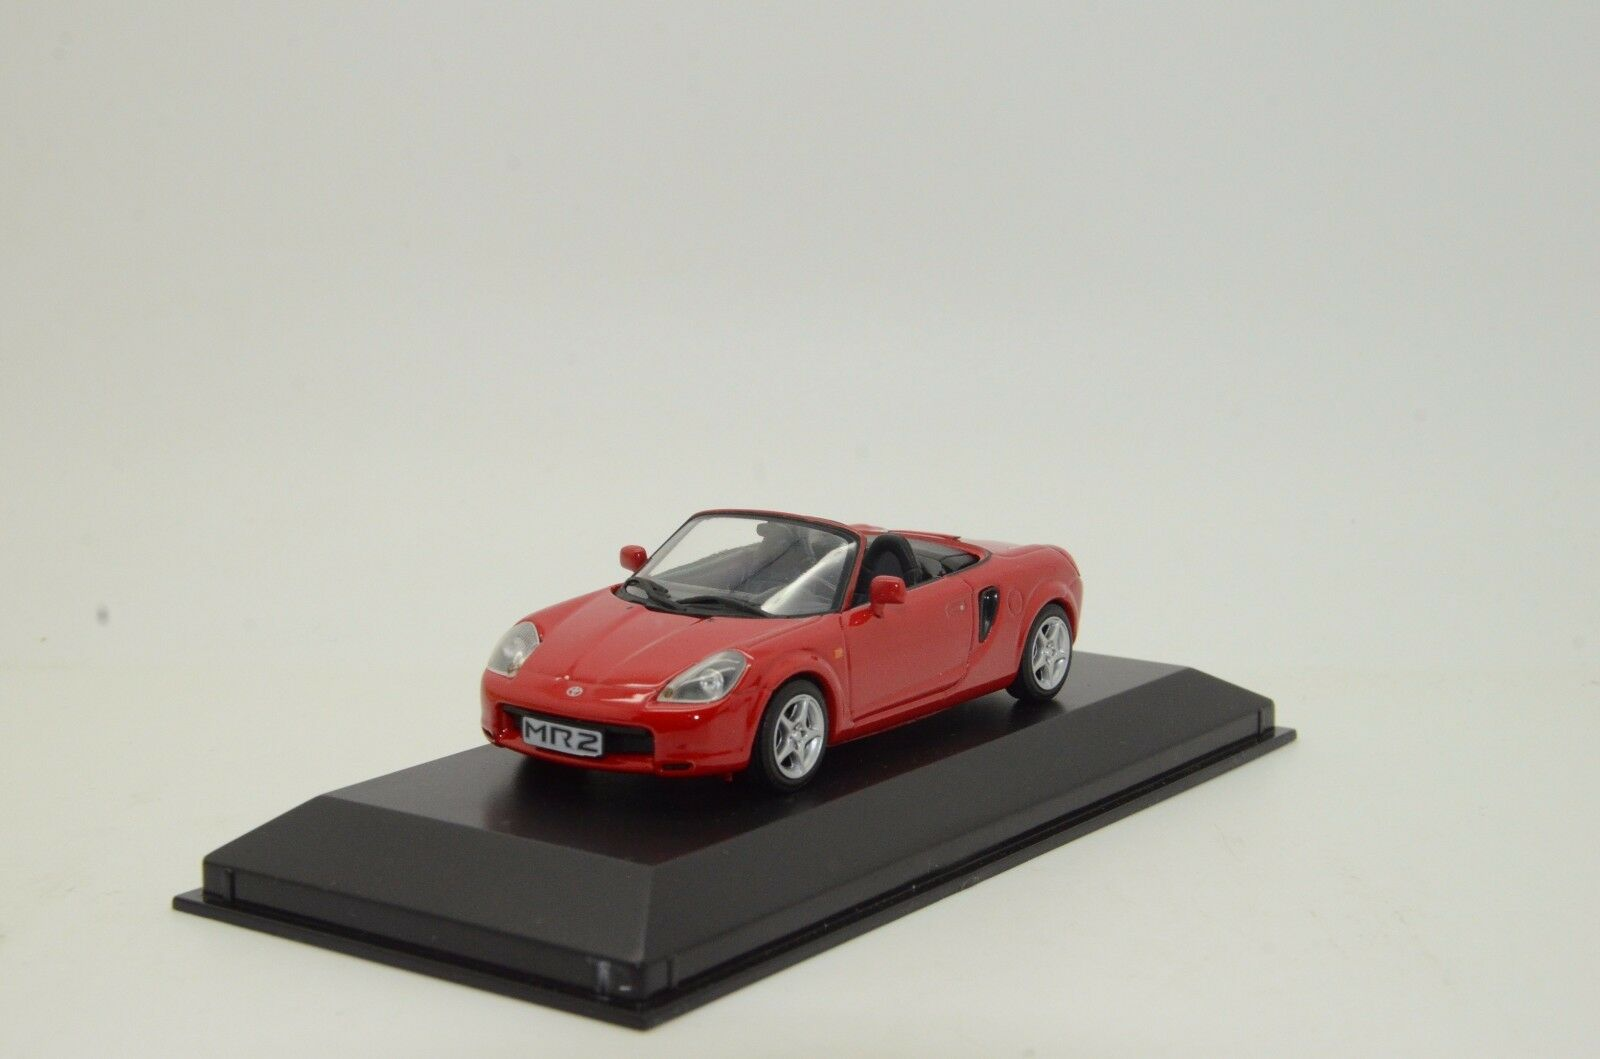 Rare   Toyota MR2 Minichamps 1 43